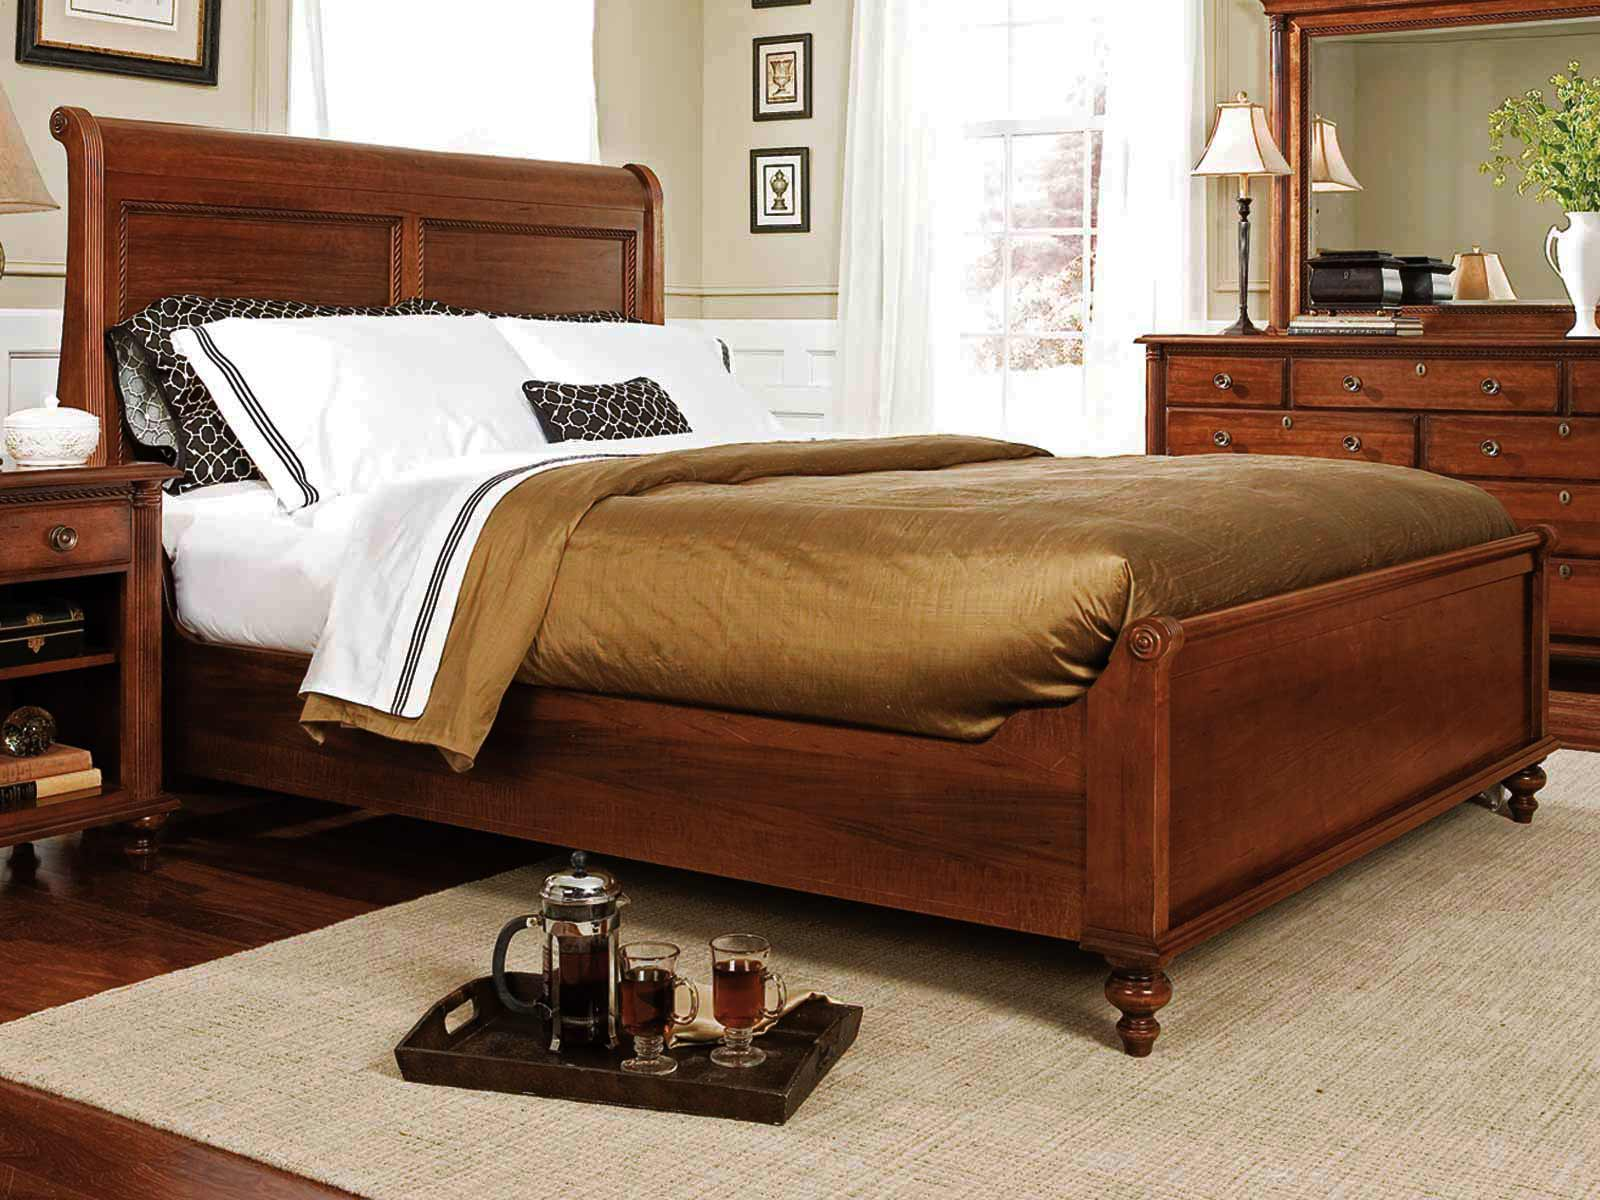 Durham Furniture Savile Row Cal King Sleigh Bed W Low Footboard In Victorian Mahogany 980 147bck Vicm